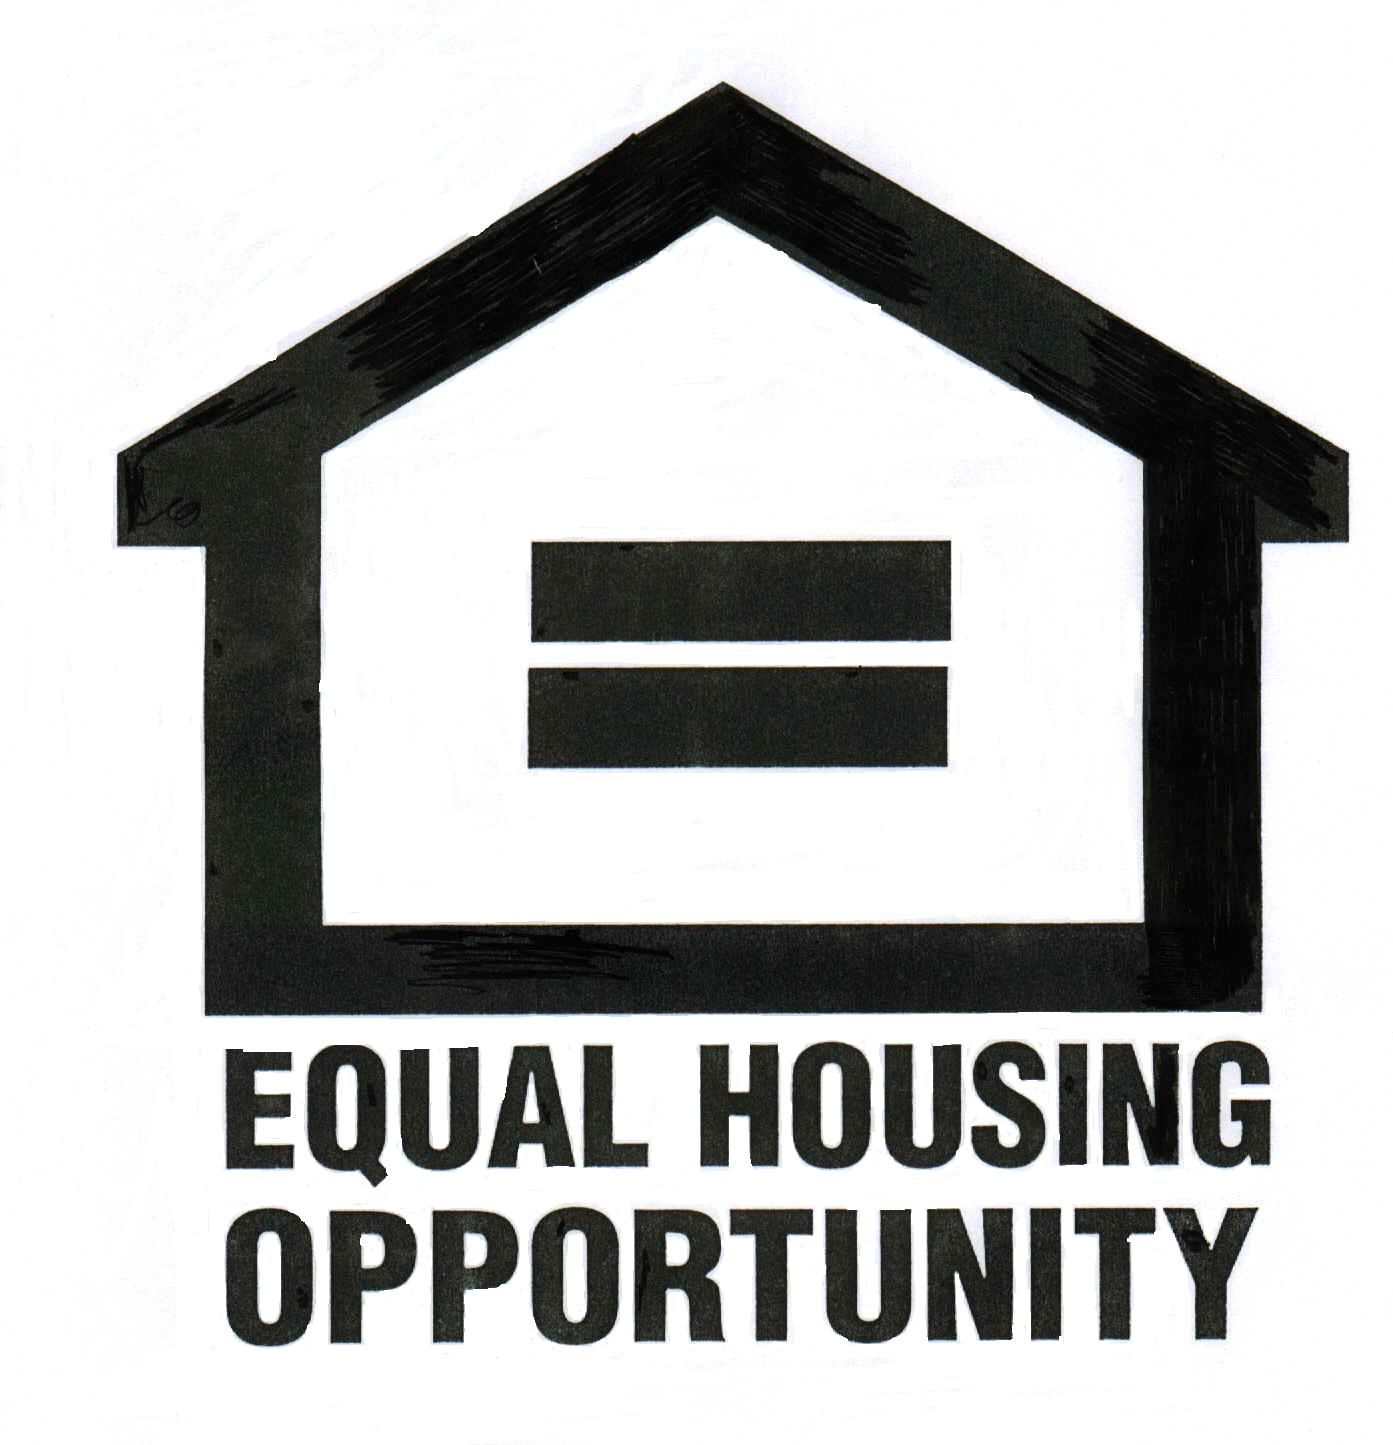 https://tnwlc.com/wp-content/uploads/2019/10/equal-housing-logo.jpg